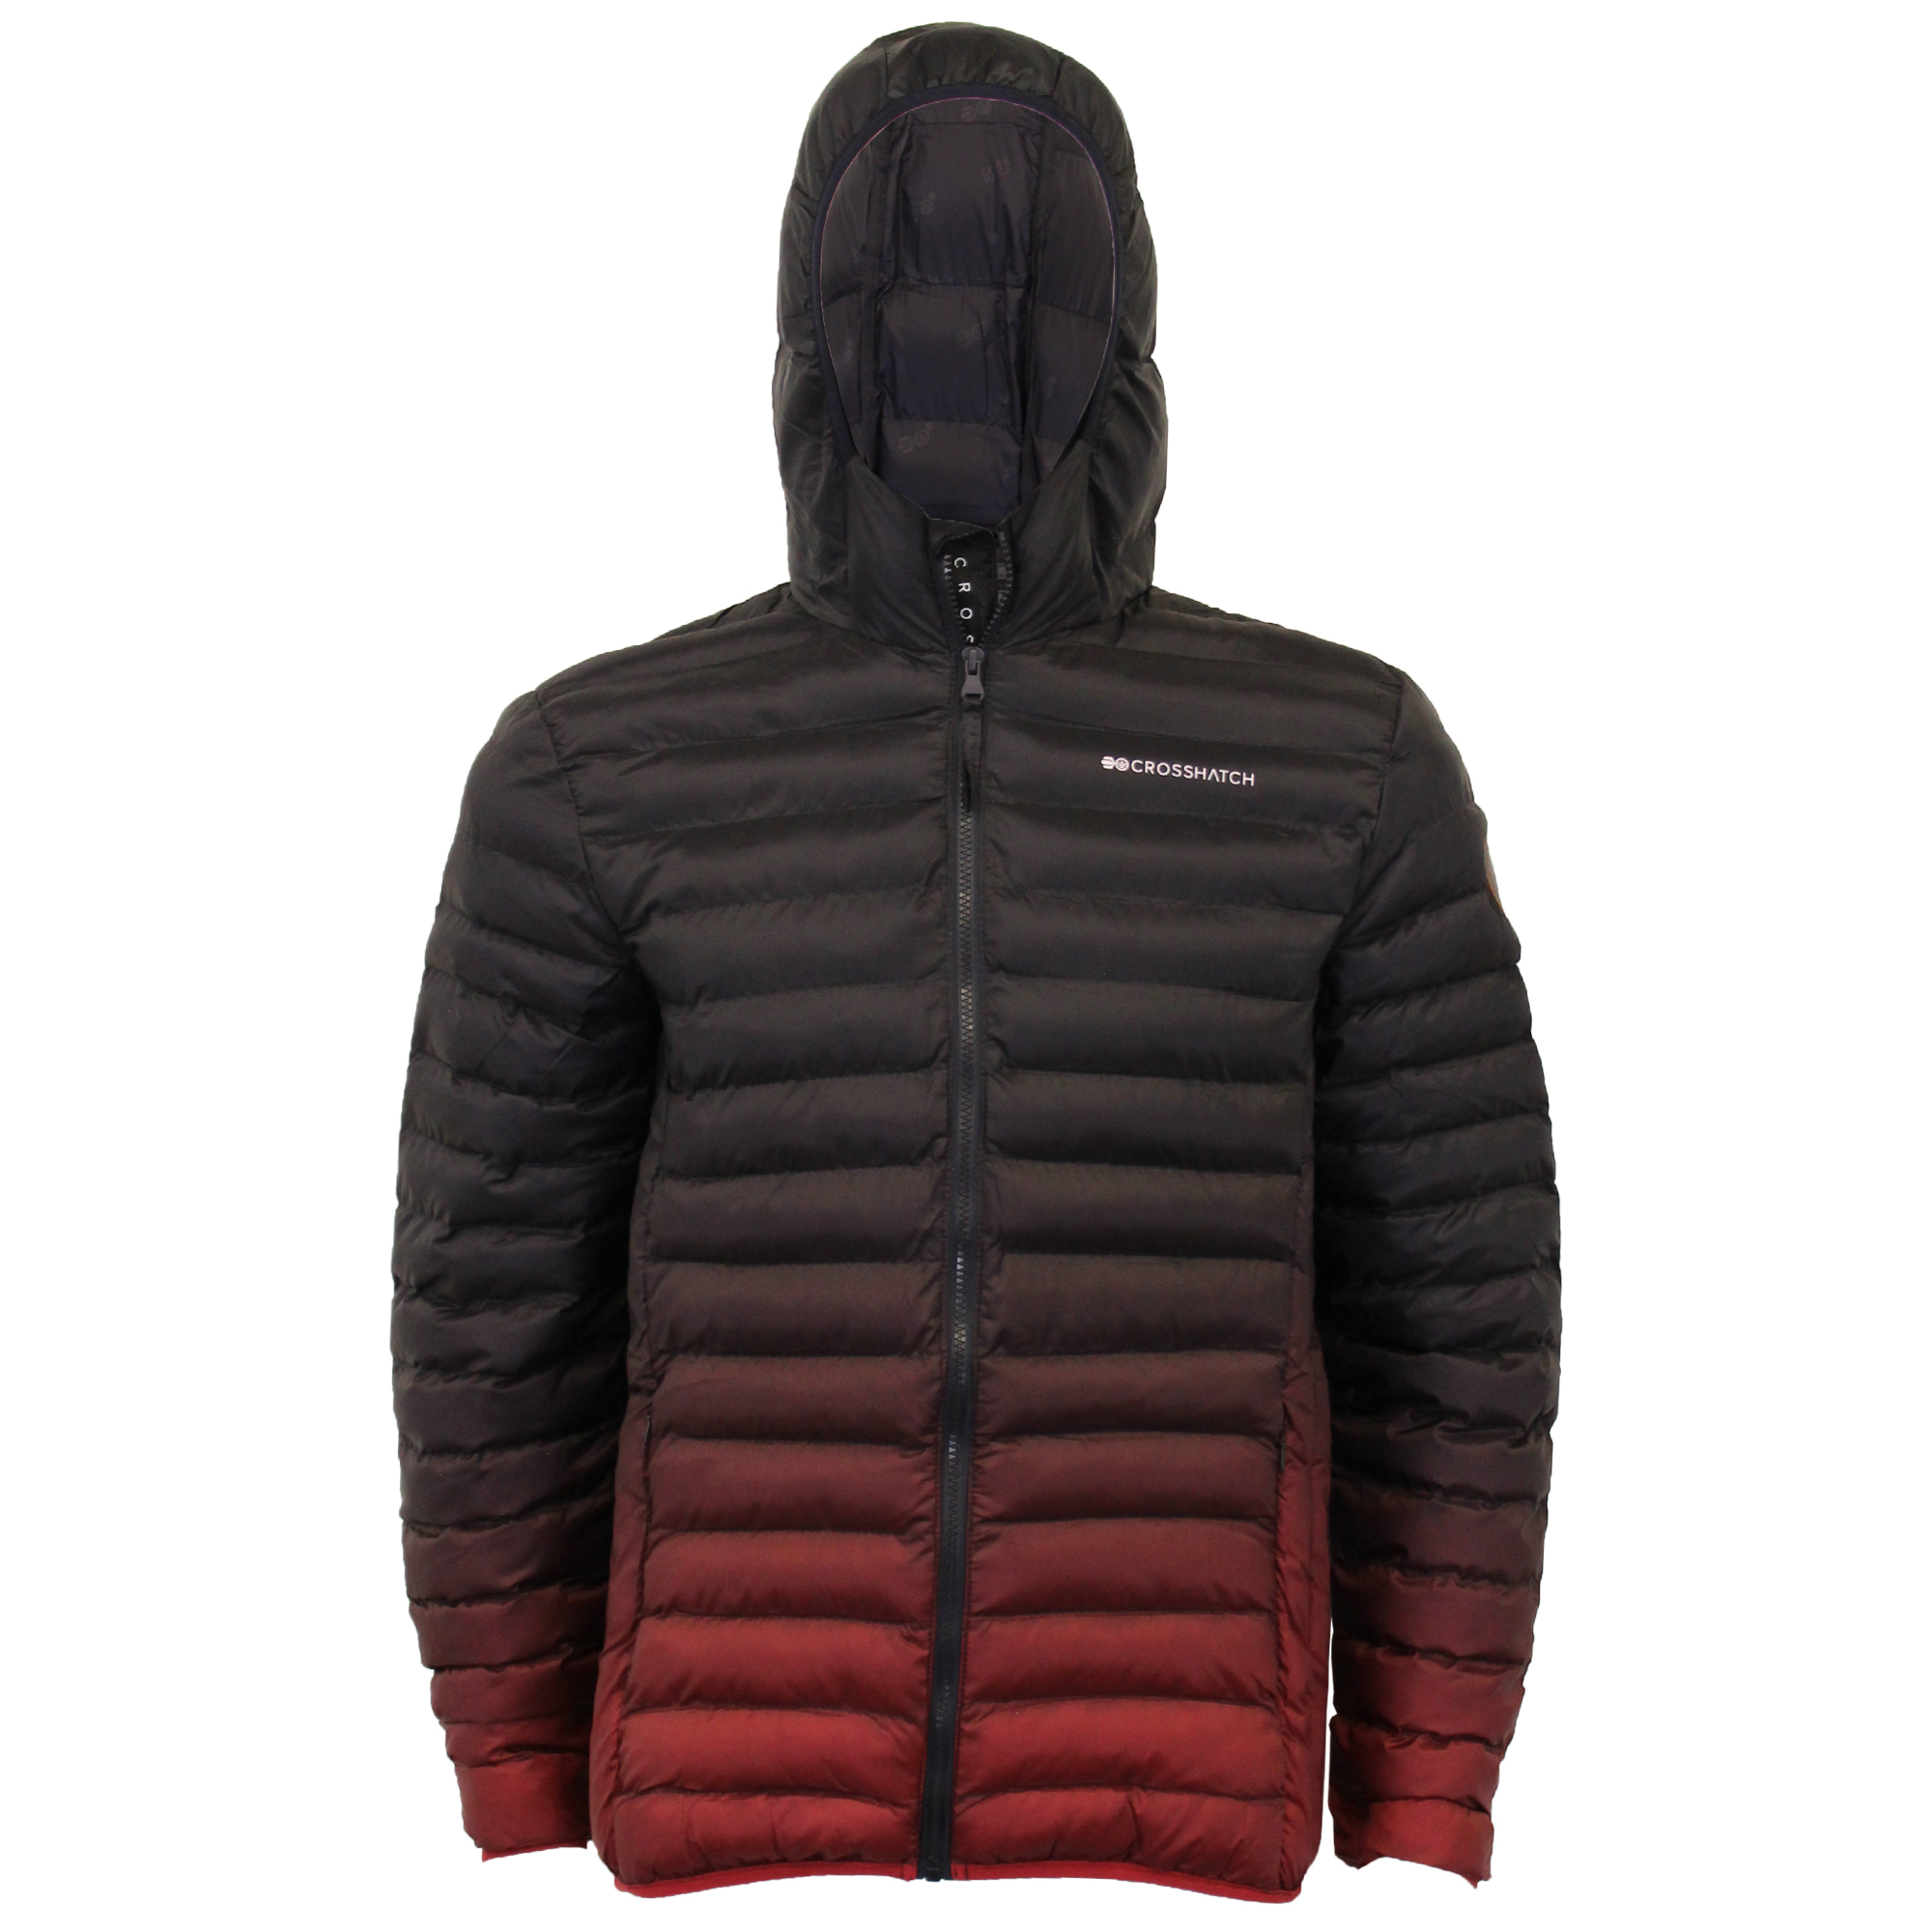 Mens-Jacket-Crosshatch-Hooded-Padded-Quilted-Two-Tone-FADEDOWN-Lined-Winter-New thumbnail 8